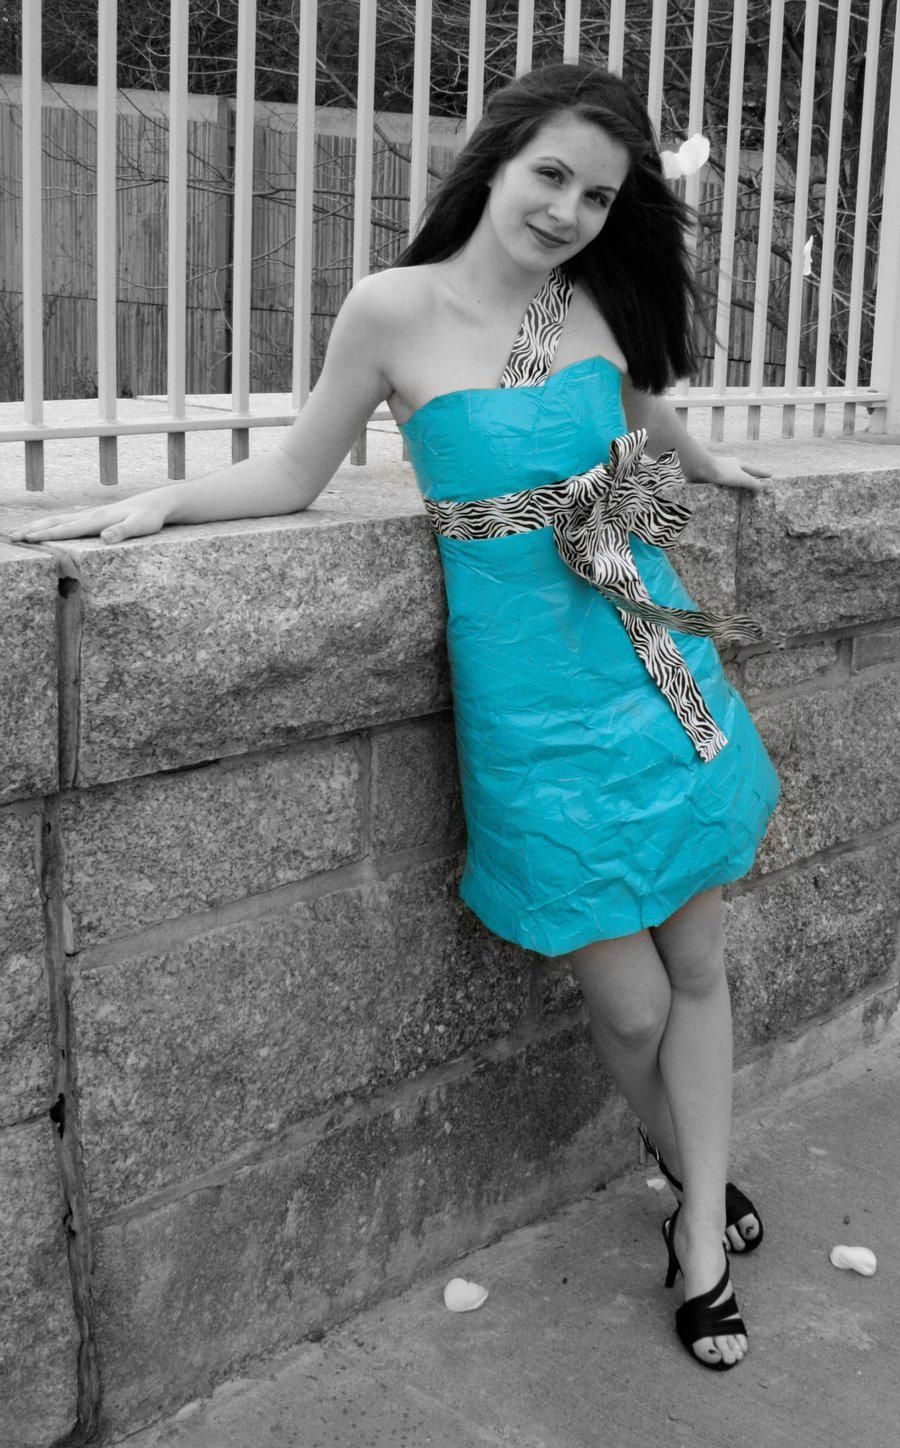 For a simple duct tape dress like this your best bet is to buy a ...